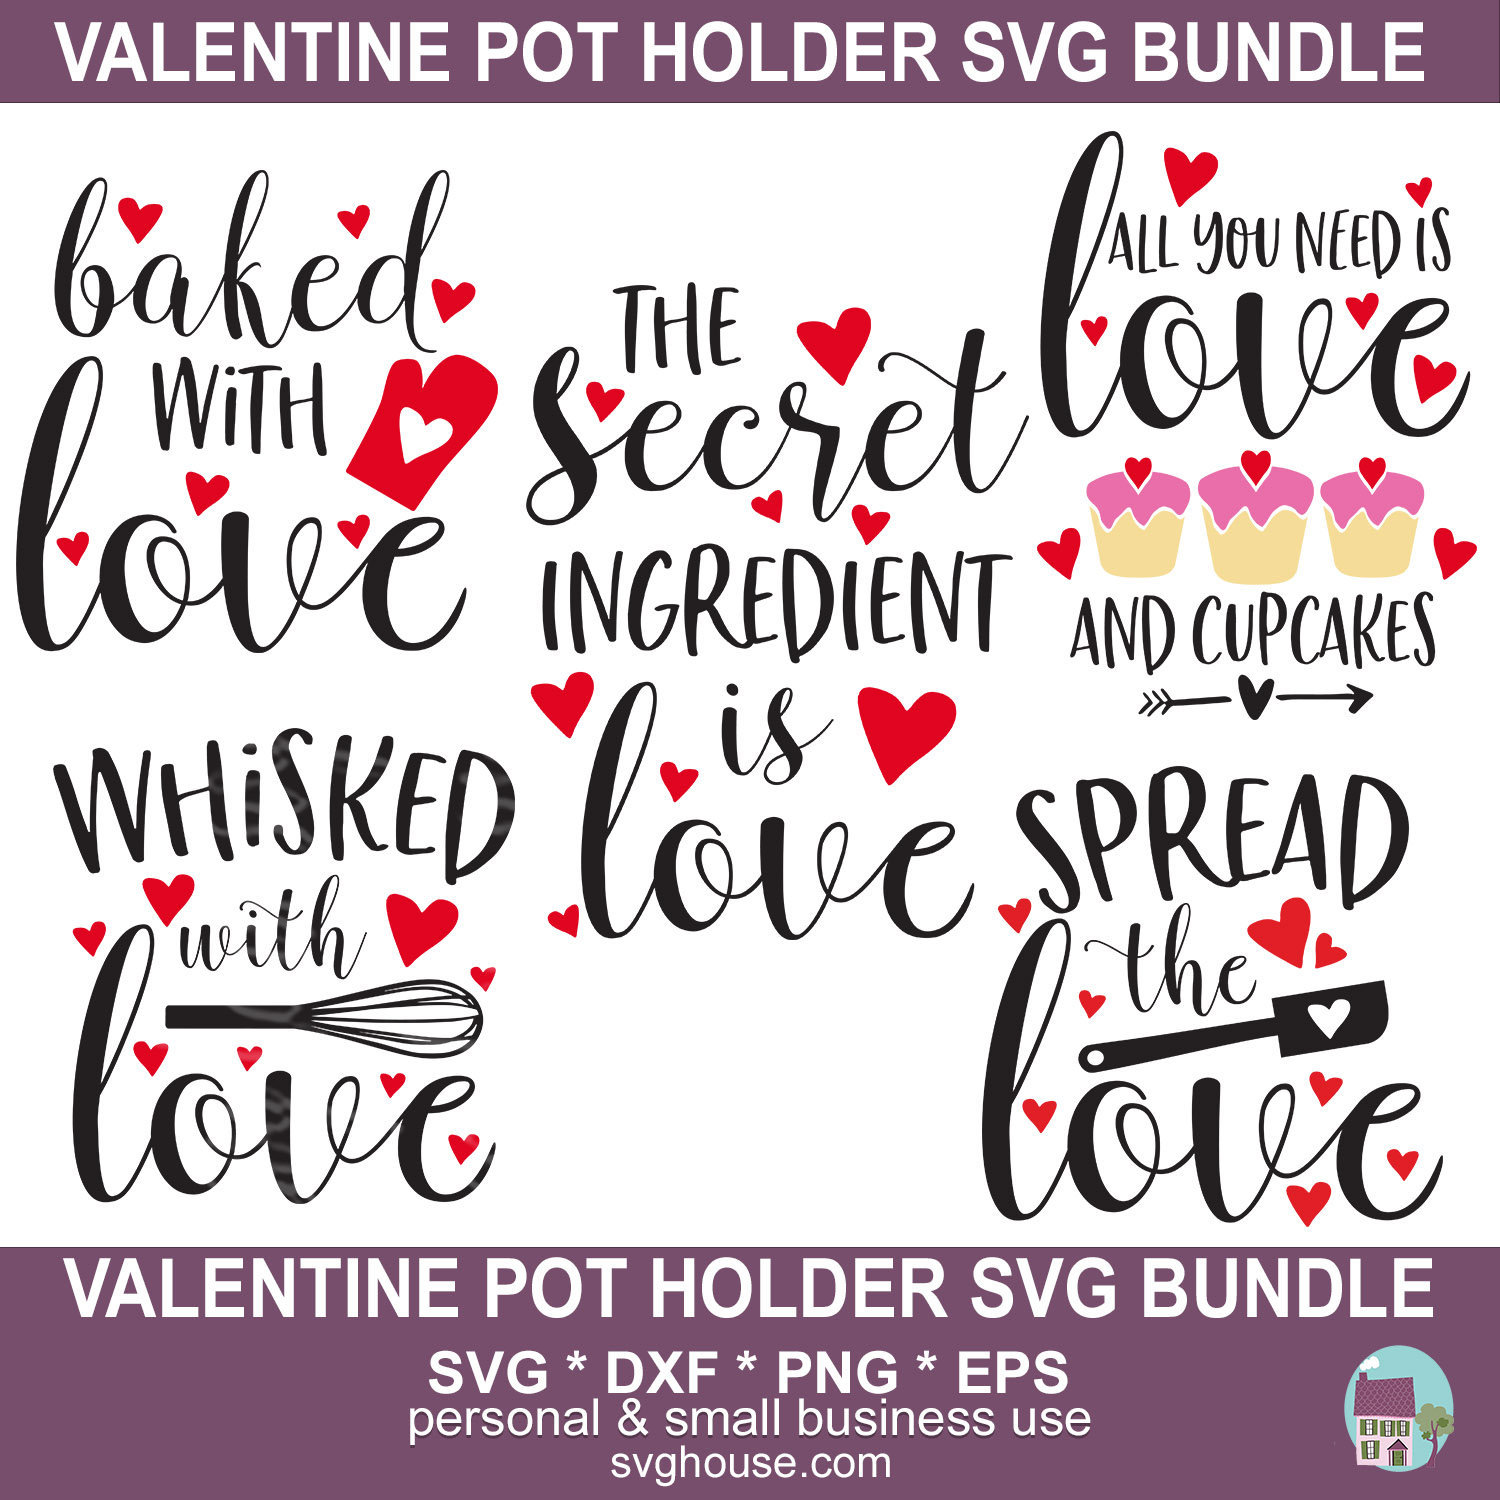 Pot Holder Svg: Valentine Pot Holder SVG Bundle Vector Cut Files For